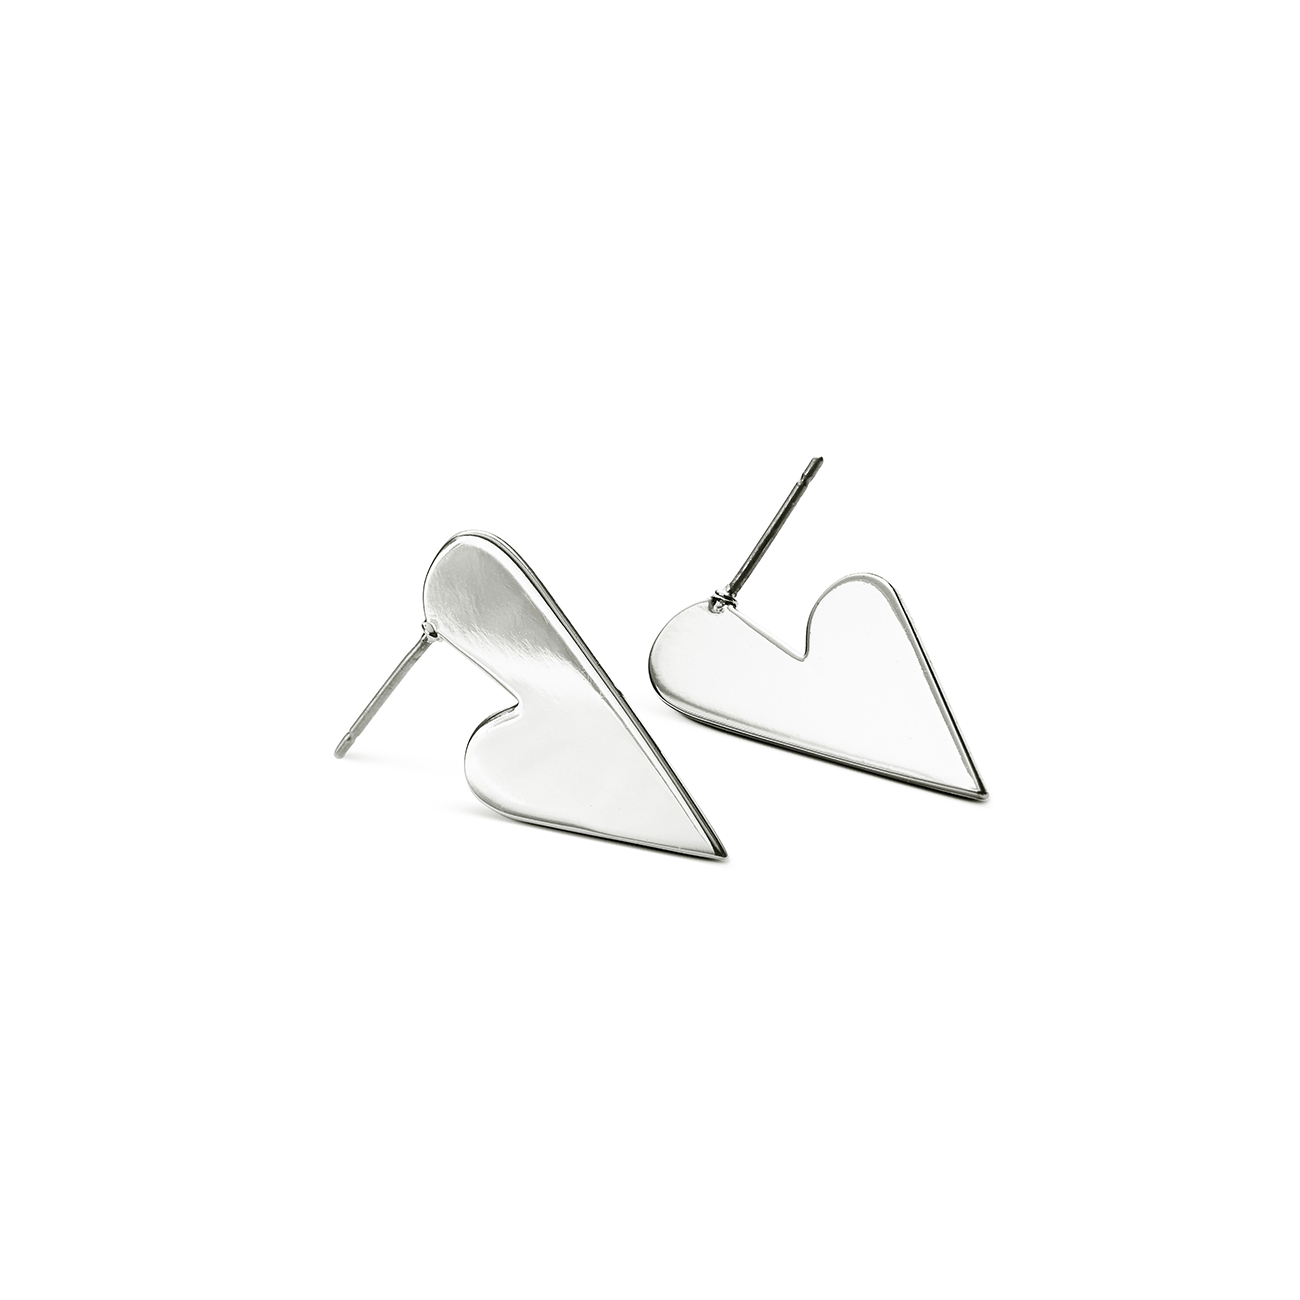 Lovestruck Earrings by Jenny Bird in Silver